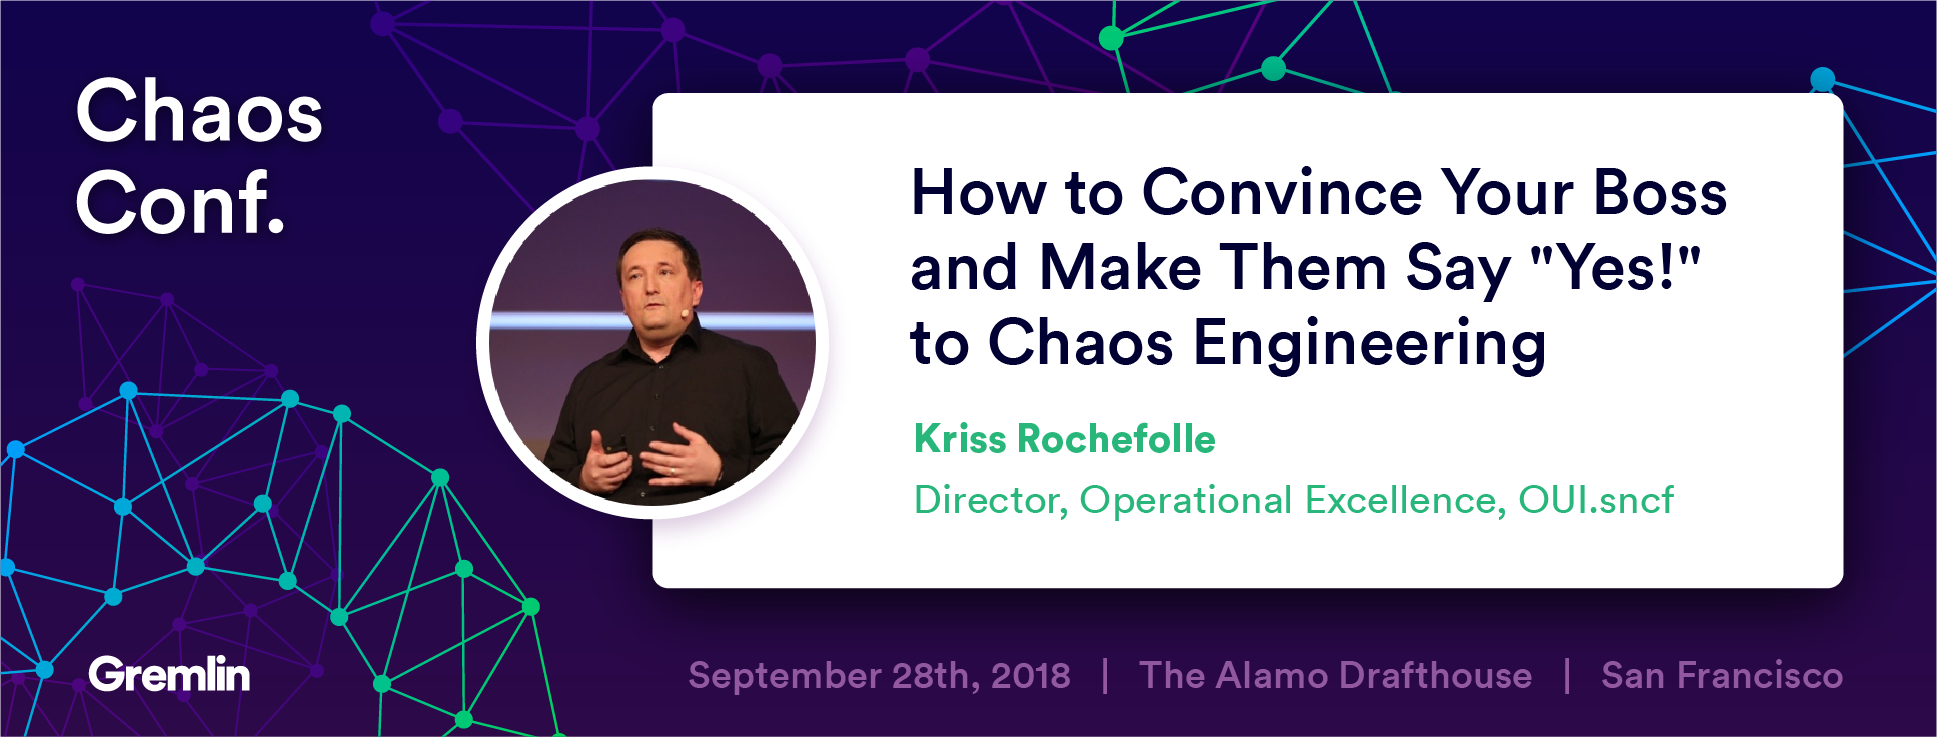 "Kriss Rochefolle: ""How to Convince Your Boss to Say ""Yes!"" to Chaos Engineering"" - Chaos Conf 2018"